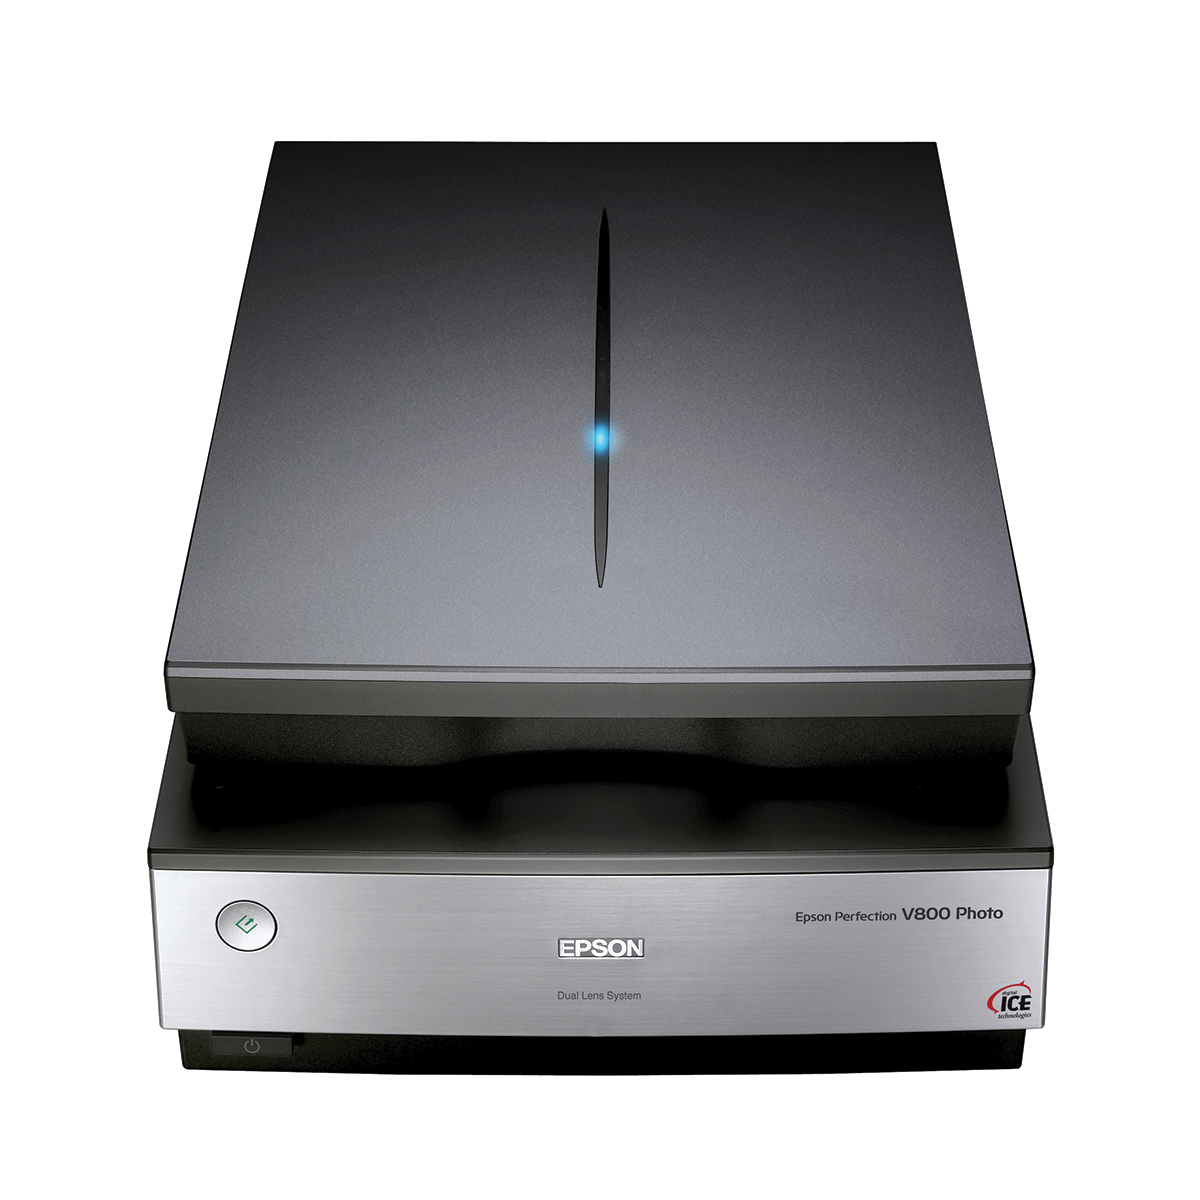 Epson Perfection V800 Photo and Film Scanner